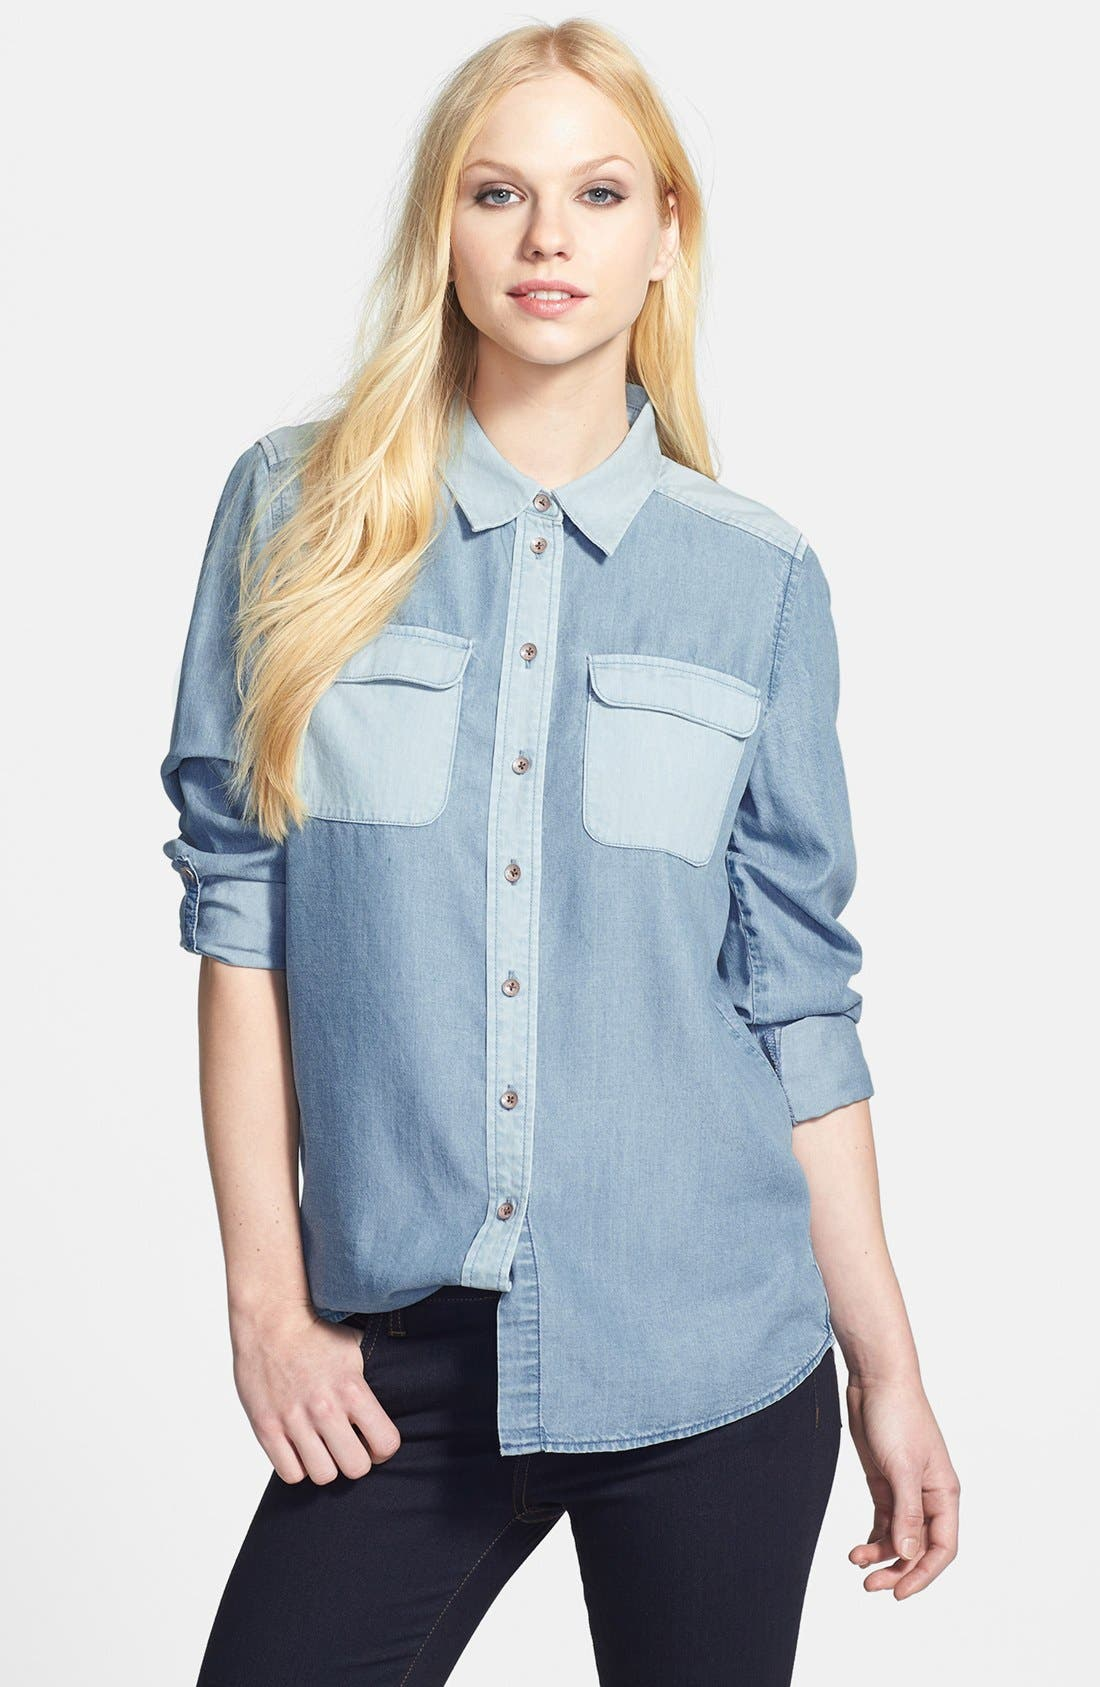 Main Image - Two by Vince Camuto Two-Tone Denim Utility Shirt